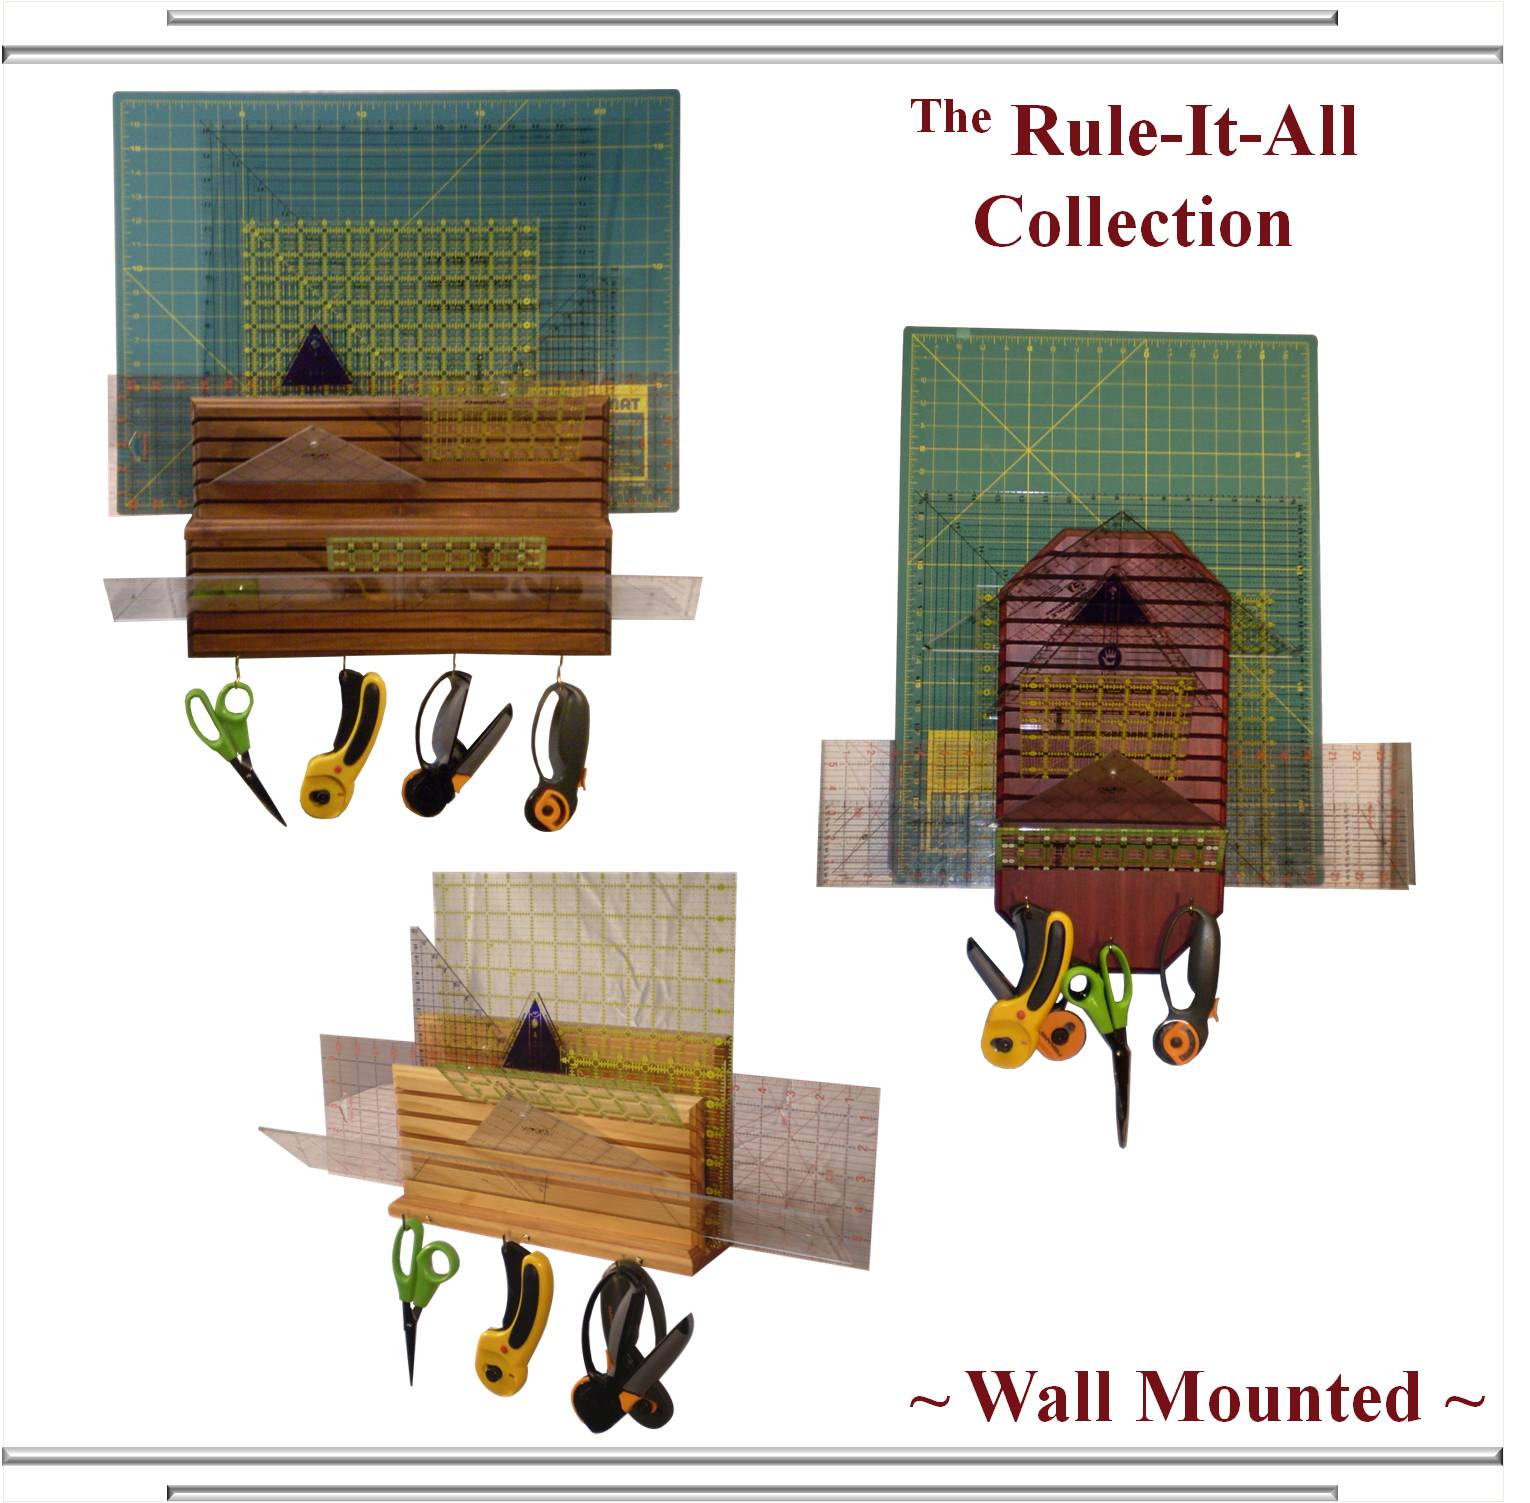 rule-it-all quilting acrylic ruler & accessory organizers